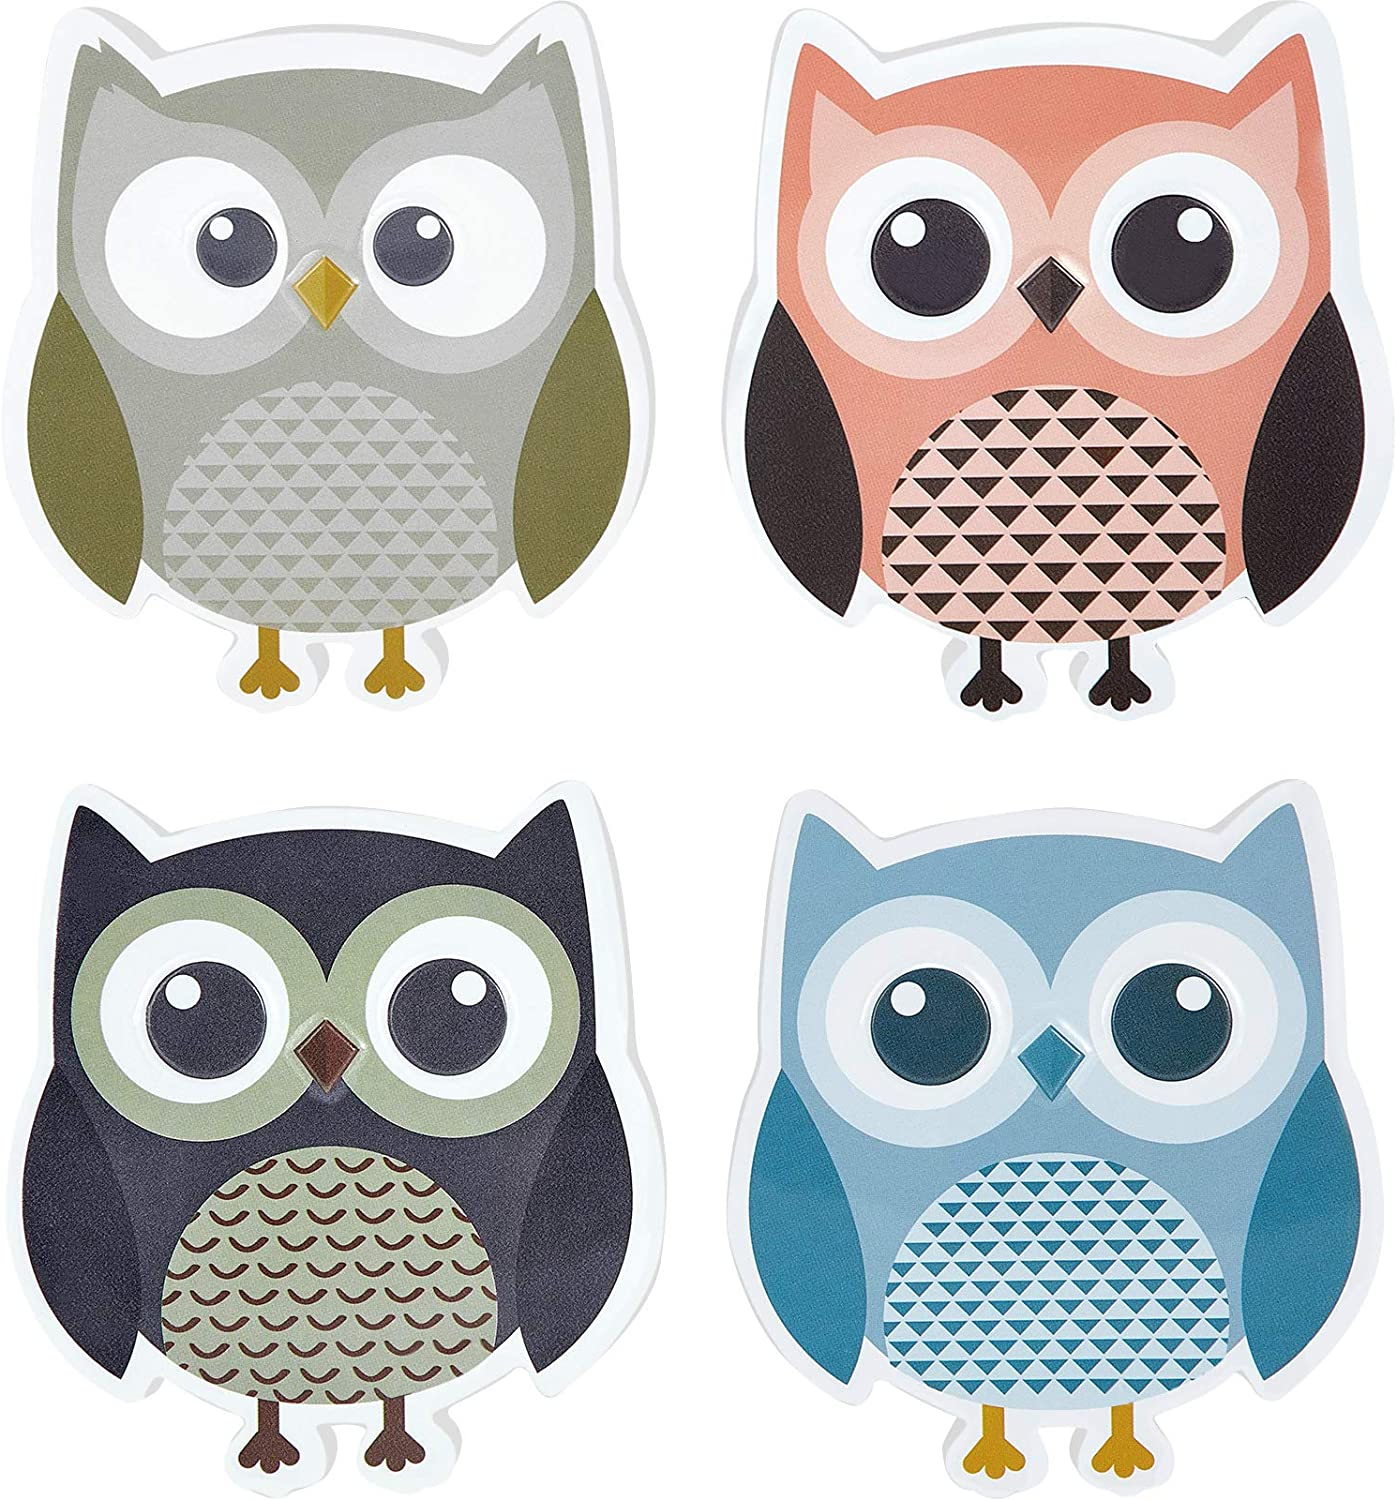 4 Pieces Cute Owl Erasers Eraser Animal Magnetic Whiteboard High Max 50% OFF quality new